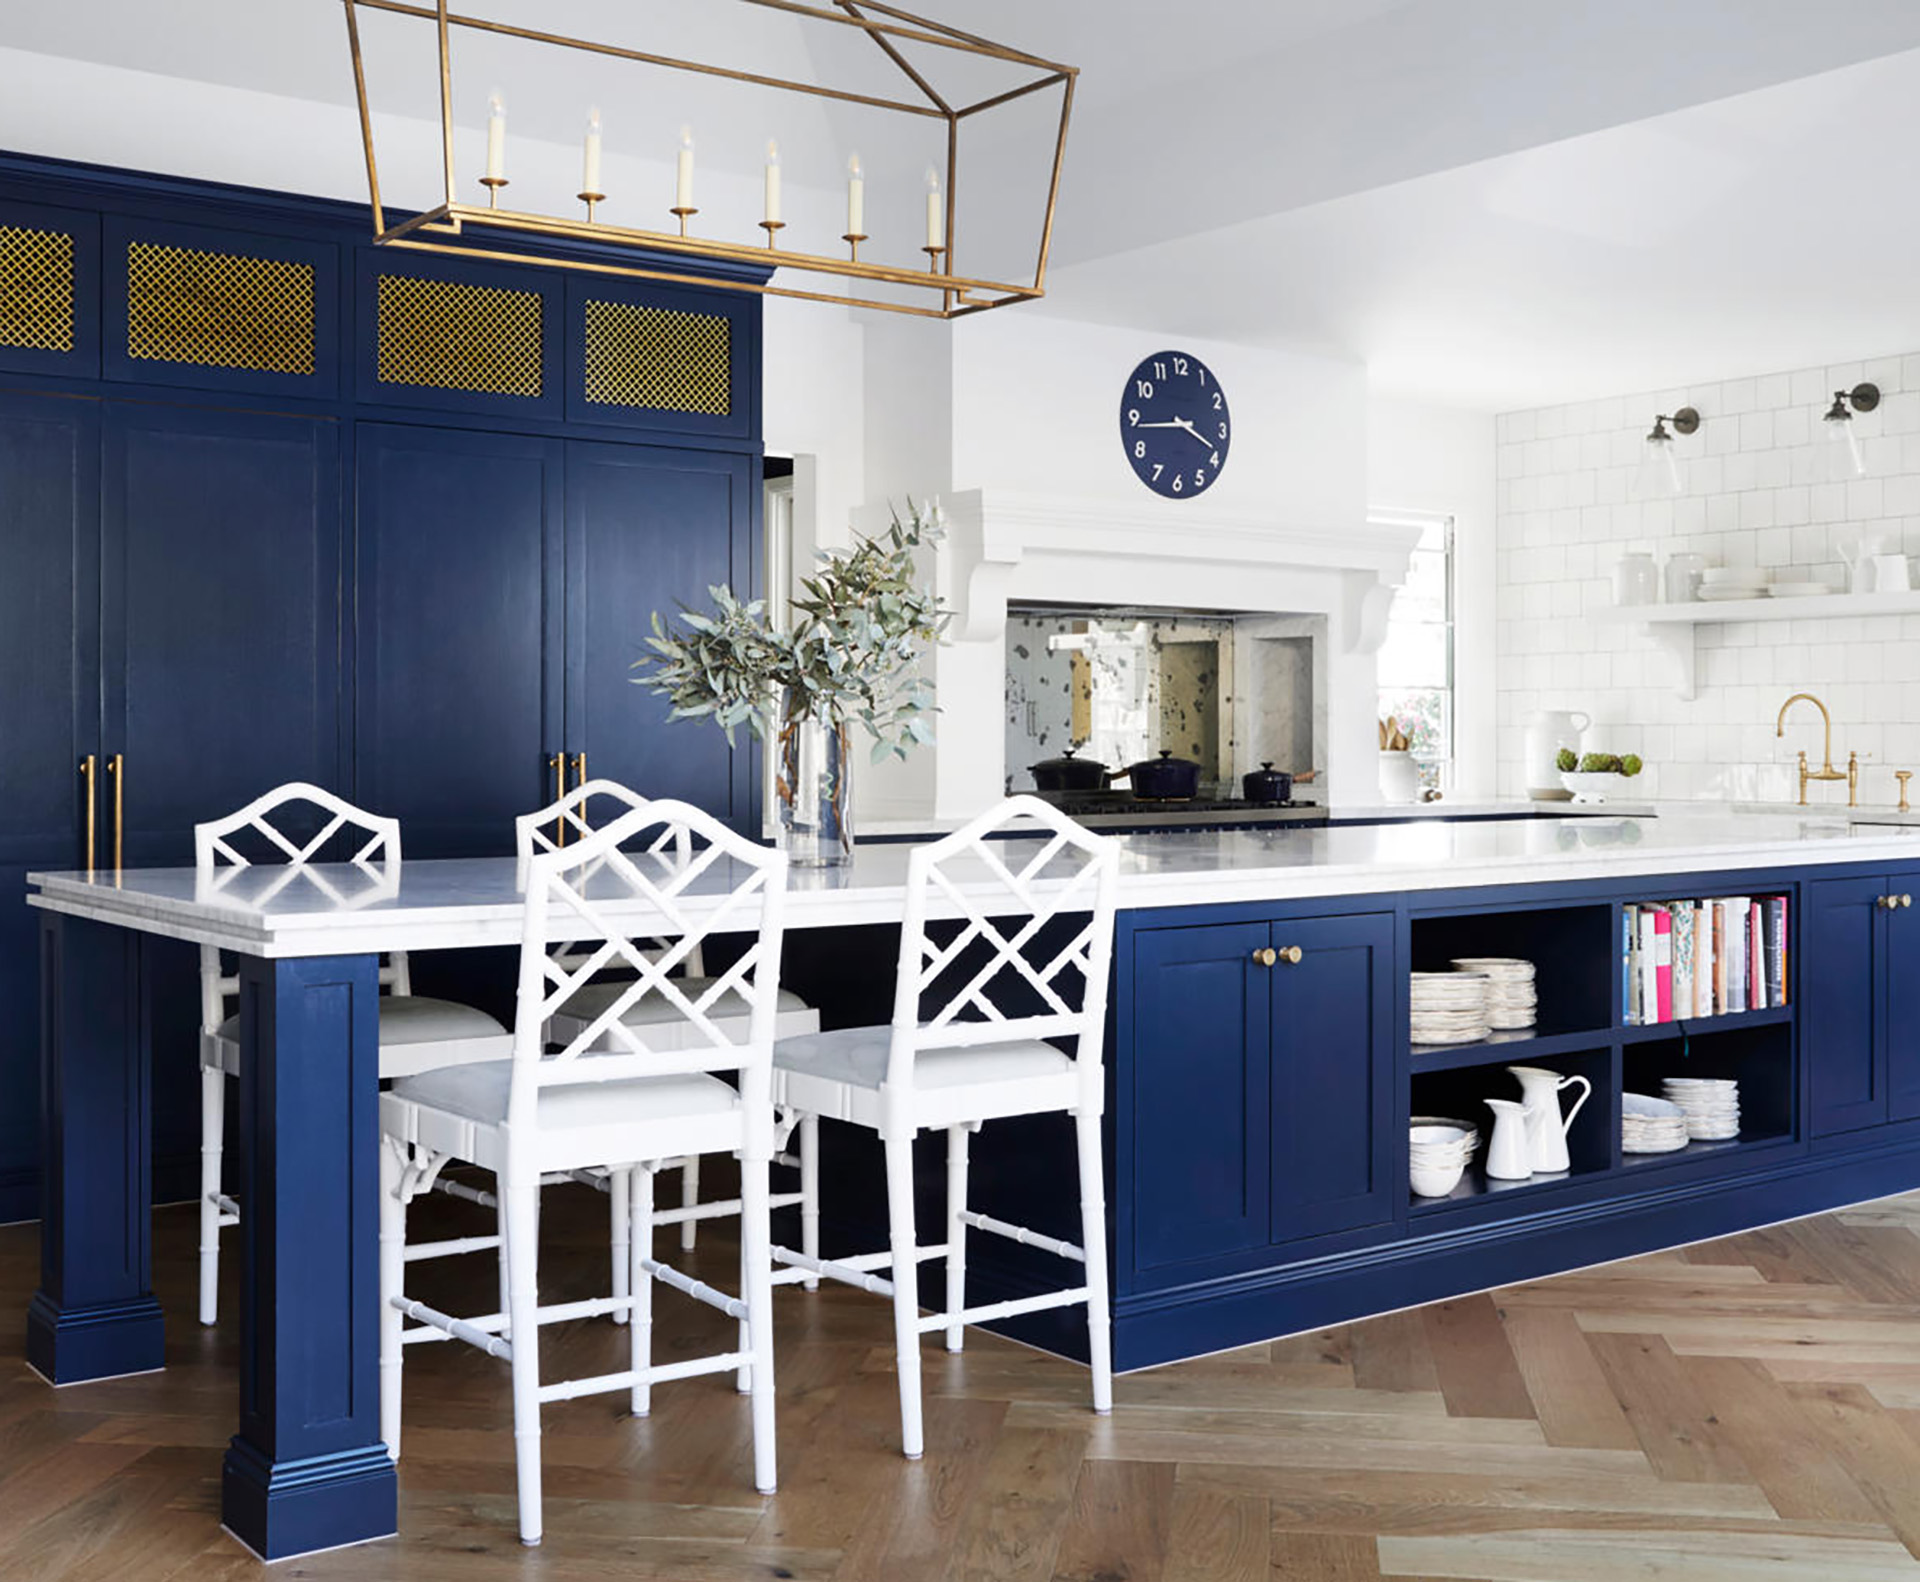 A classic Shaker-style kitchen with blue joinery and brass hardware